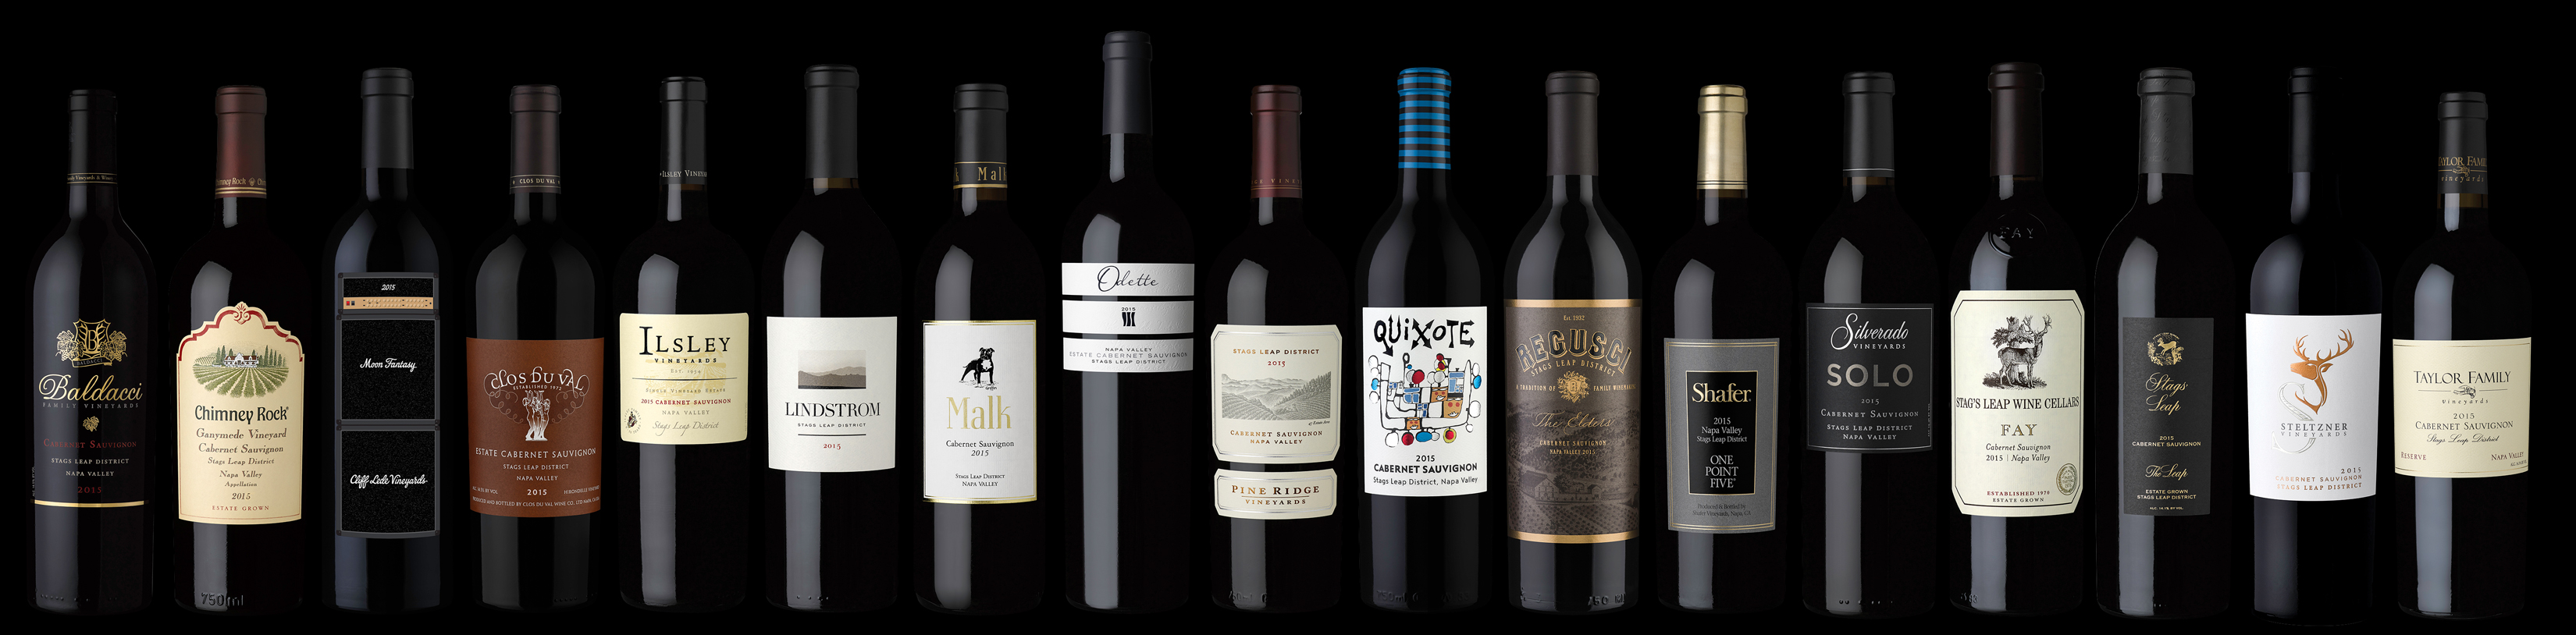 A Rare Opportunity To Obtain A Set Of 17 Limited Release 2015 Cabernet photo